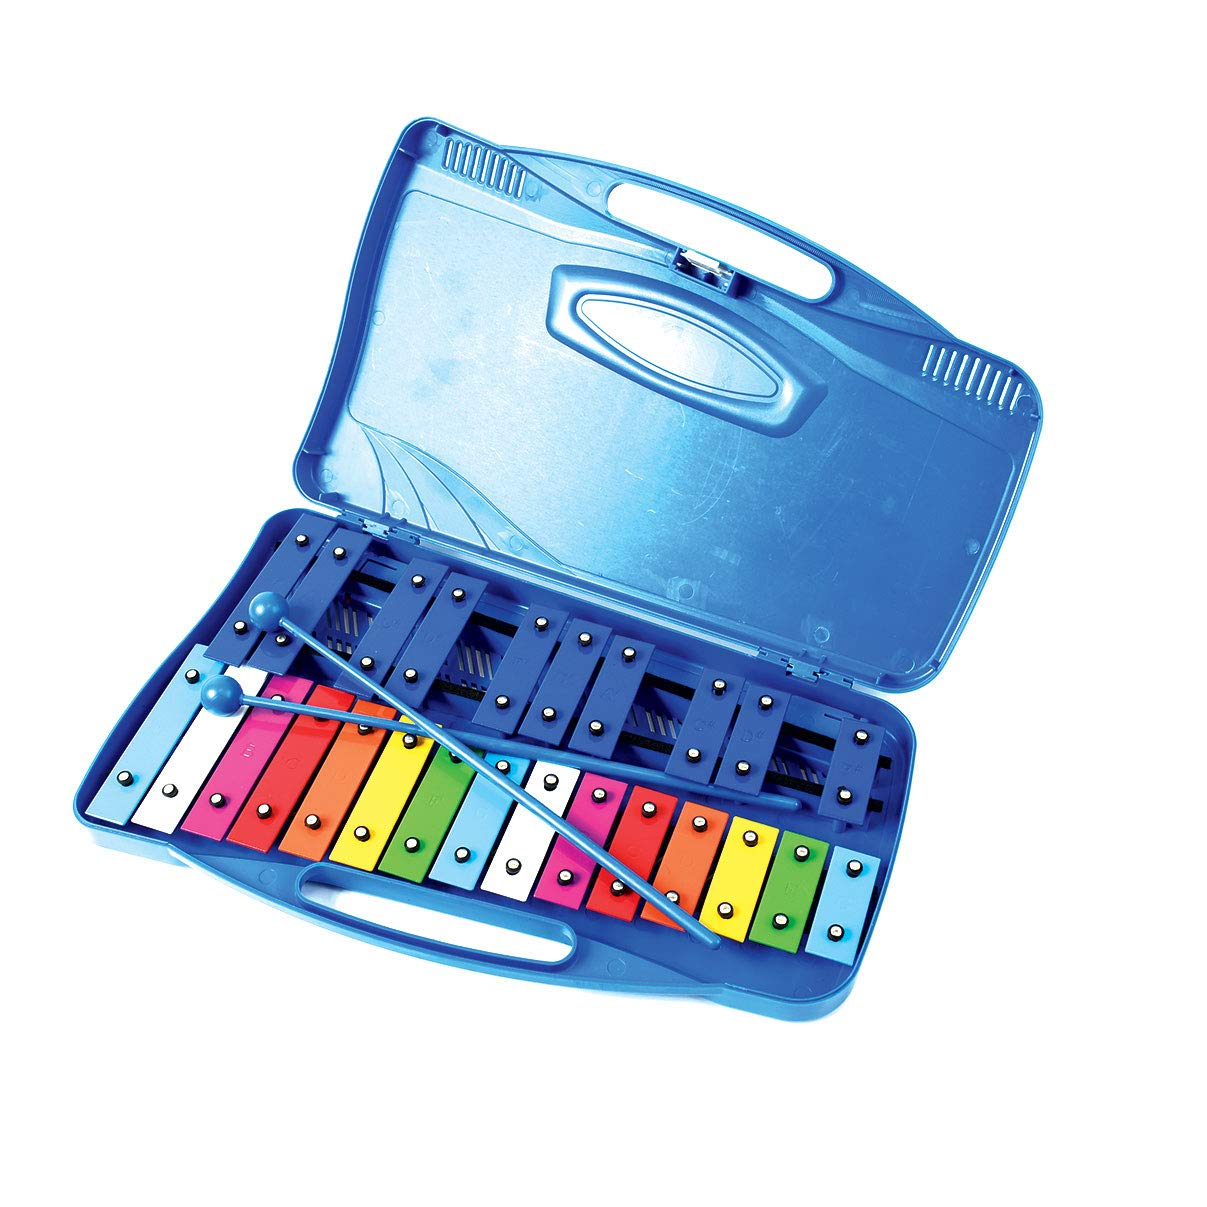 Professional Blue Plastic Soprano Glockenspiel Xylophone with 25 Metal Keys in Plastic Case - Includes 2 Plastic Beaters by Cara & Co